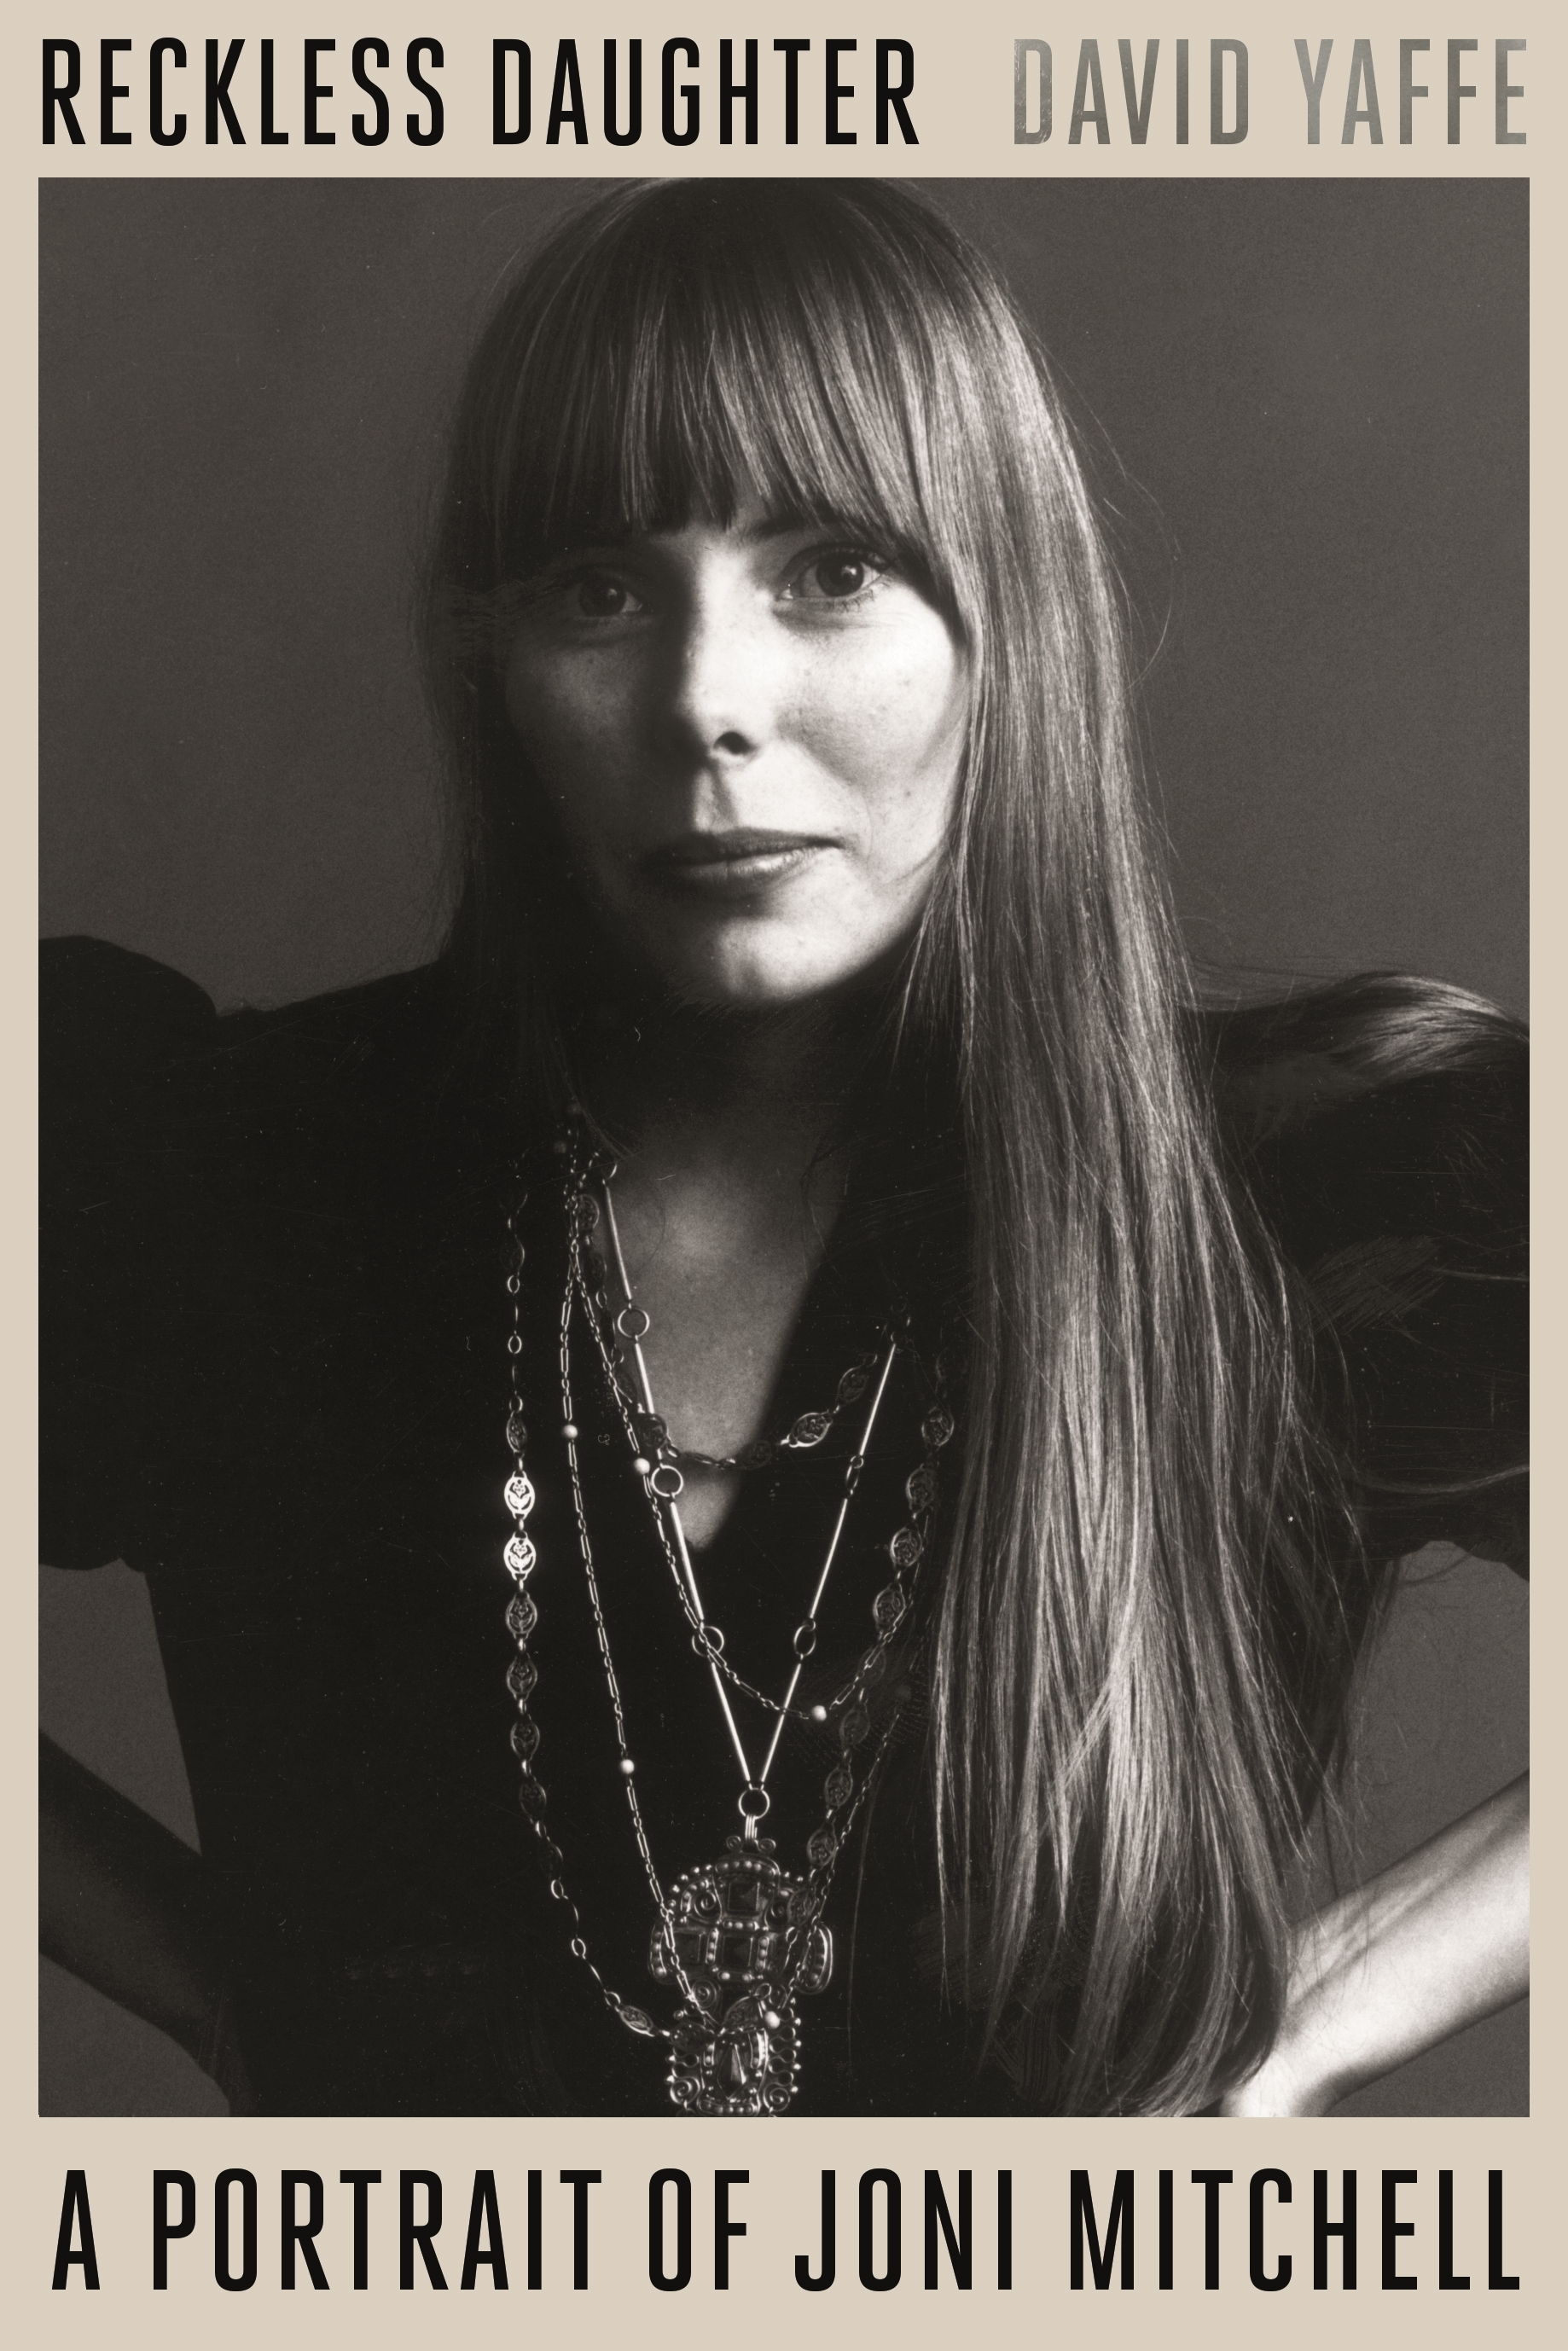 Reckless daughter [eBook] : a portrait of Joni Mitchell